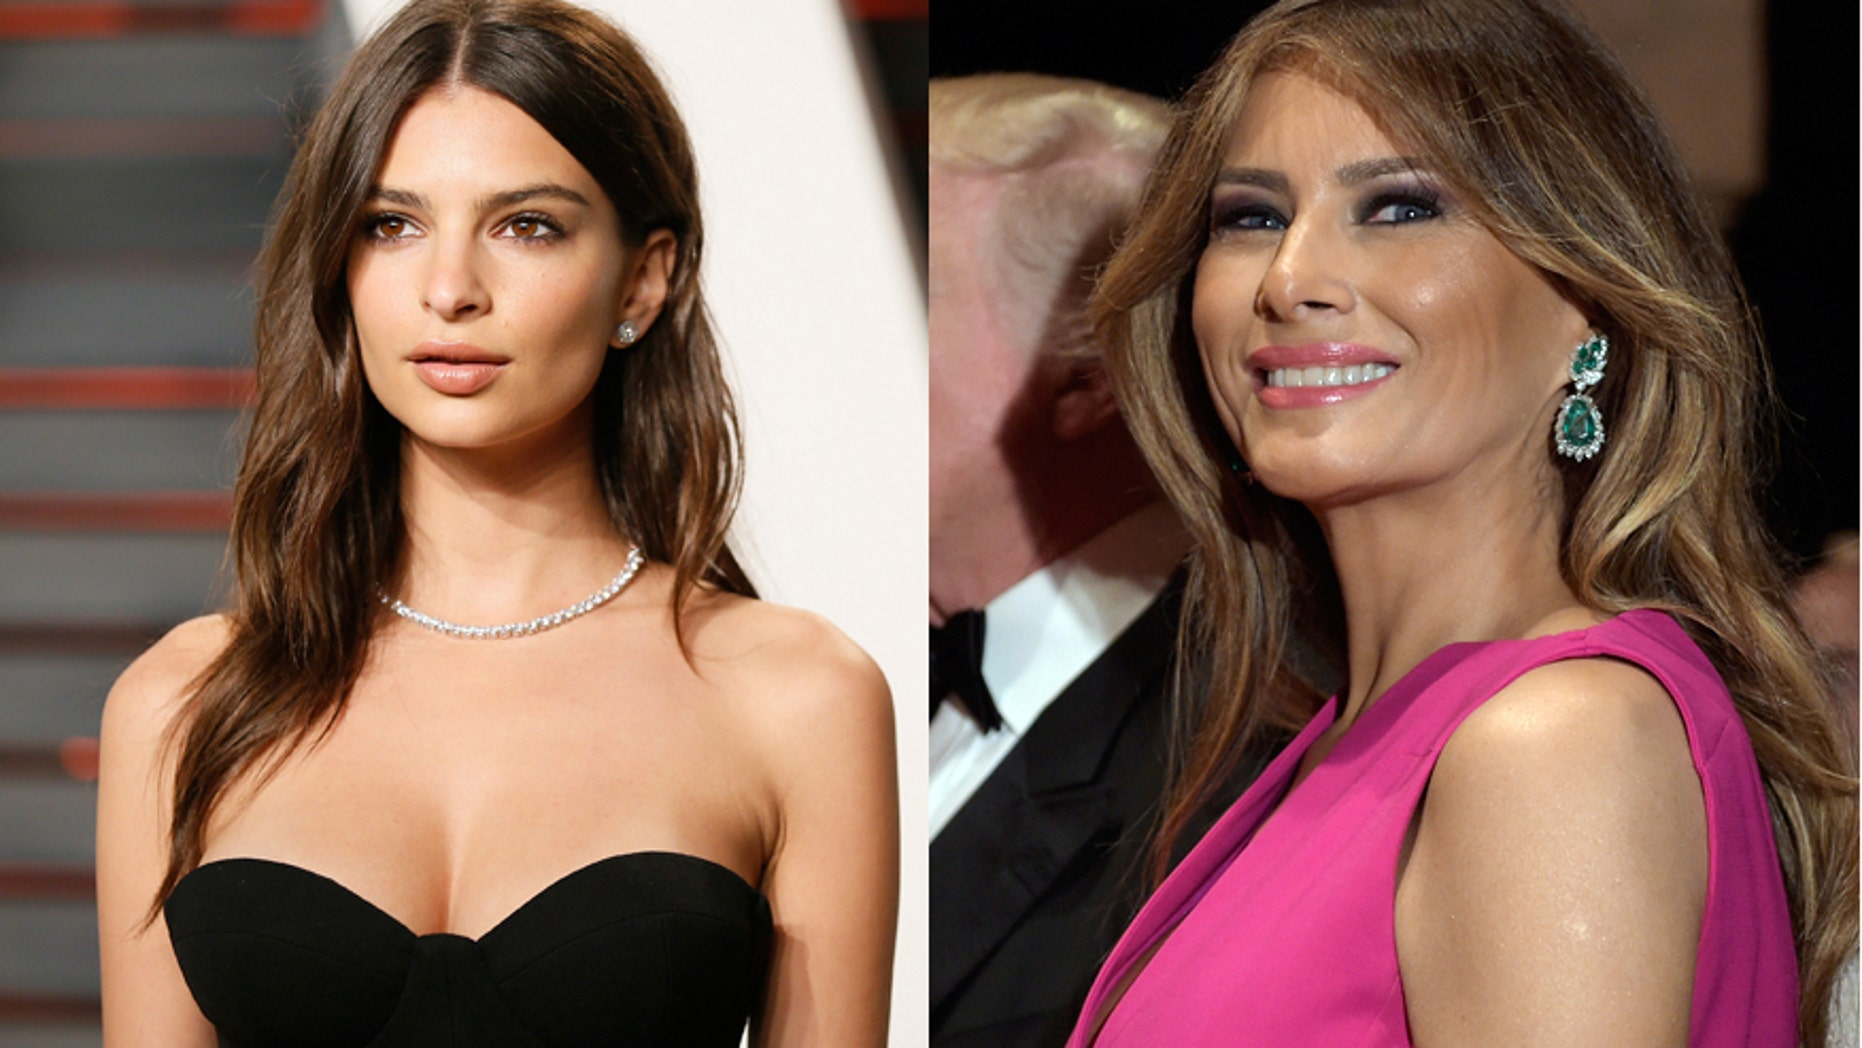 Model Emily Ratajkowski (left) and First Lady Melania Trump.